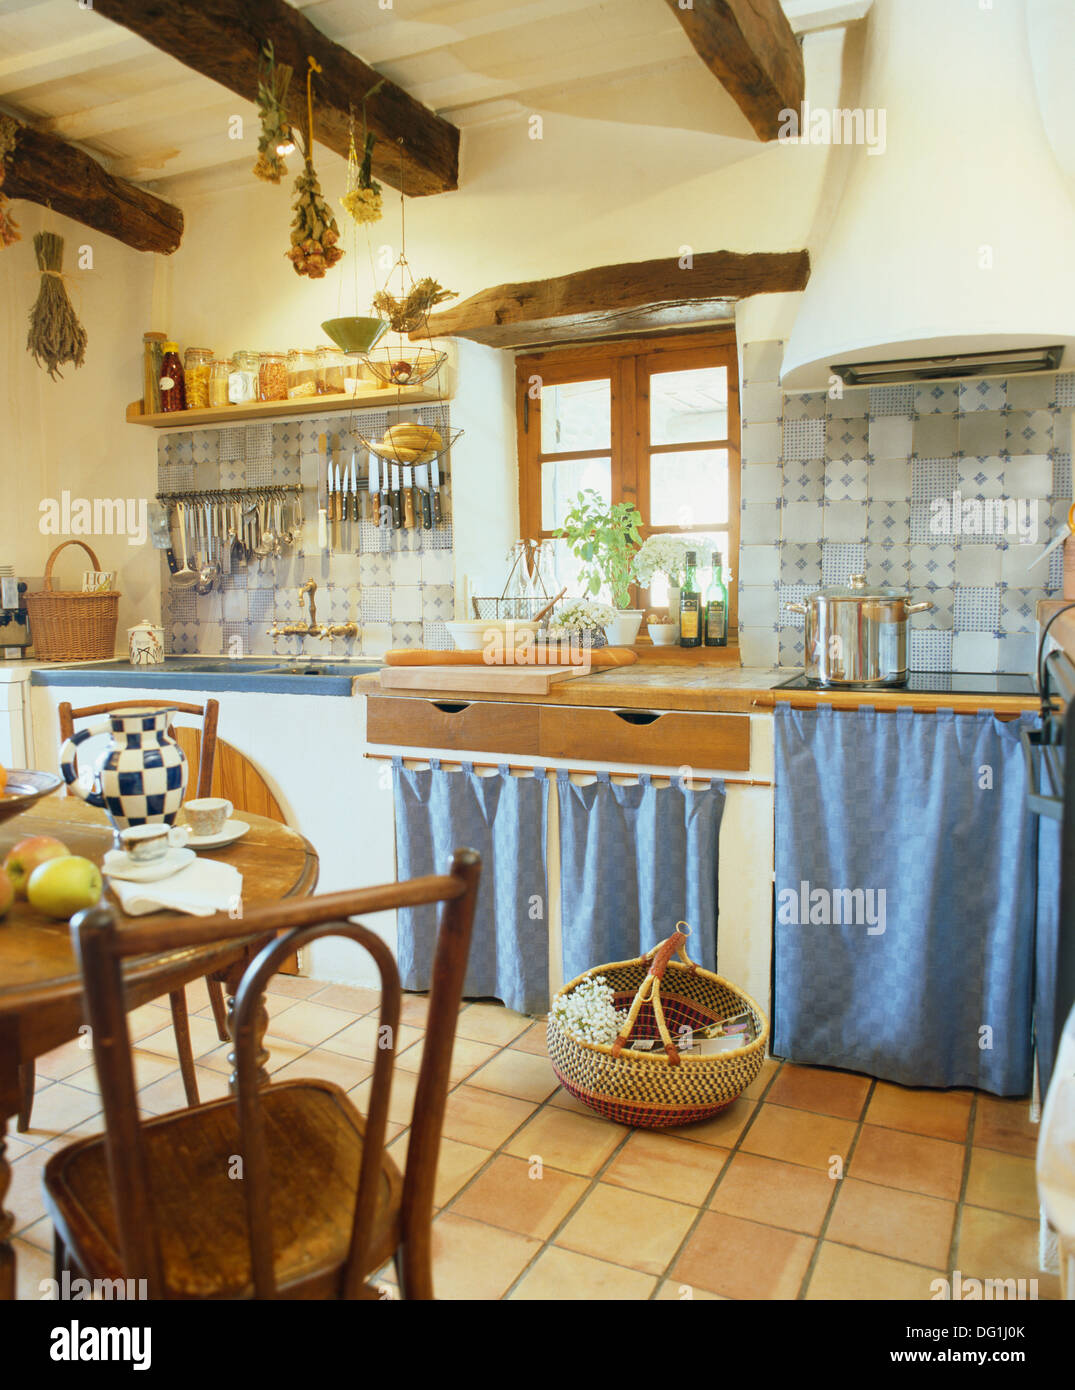 Blue Curtains On Cupboards In French Country Kitchen With Terracotta Stock Photo Alamy